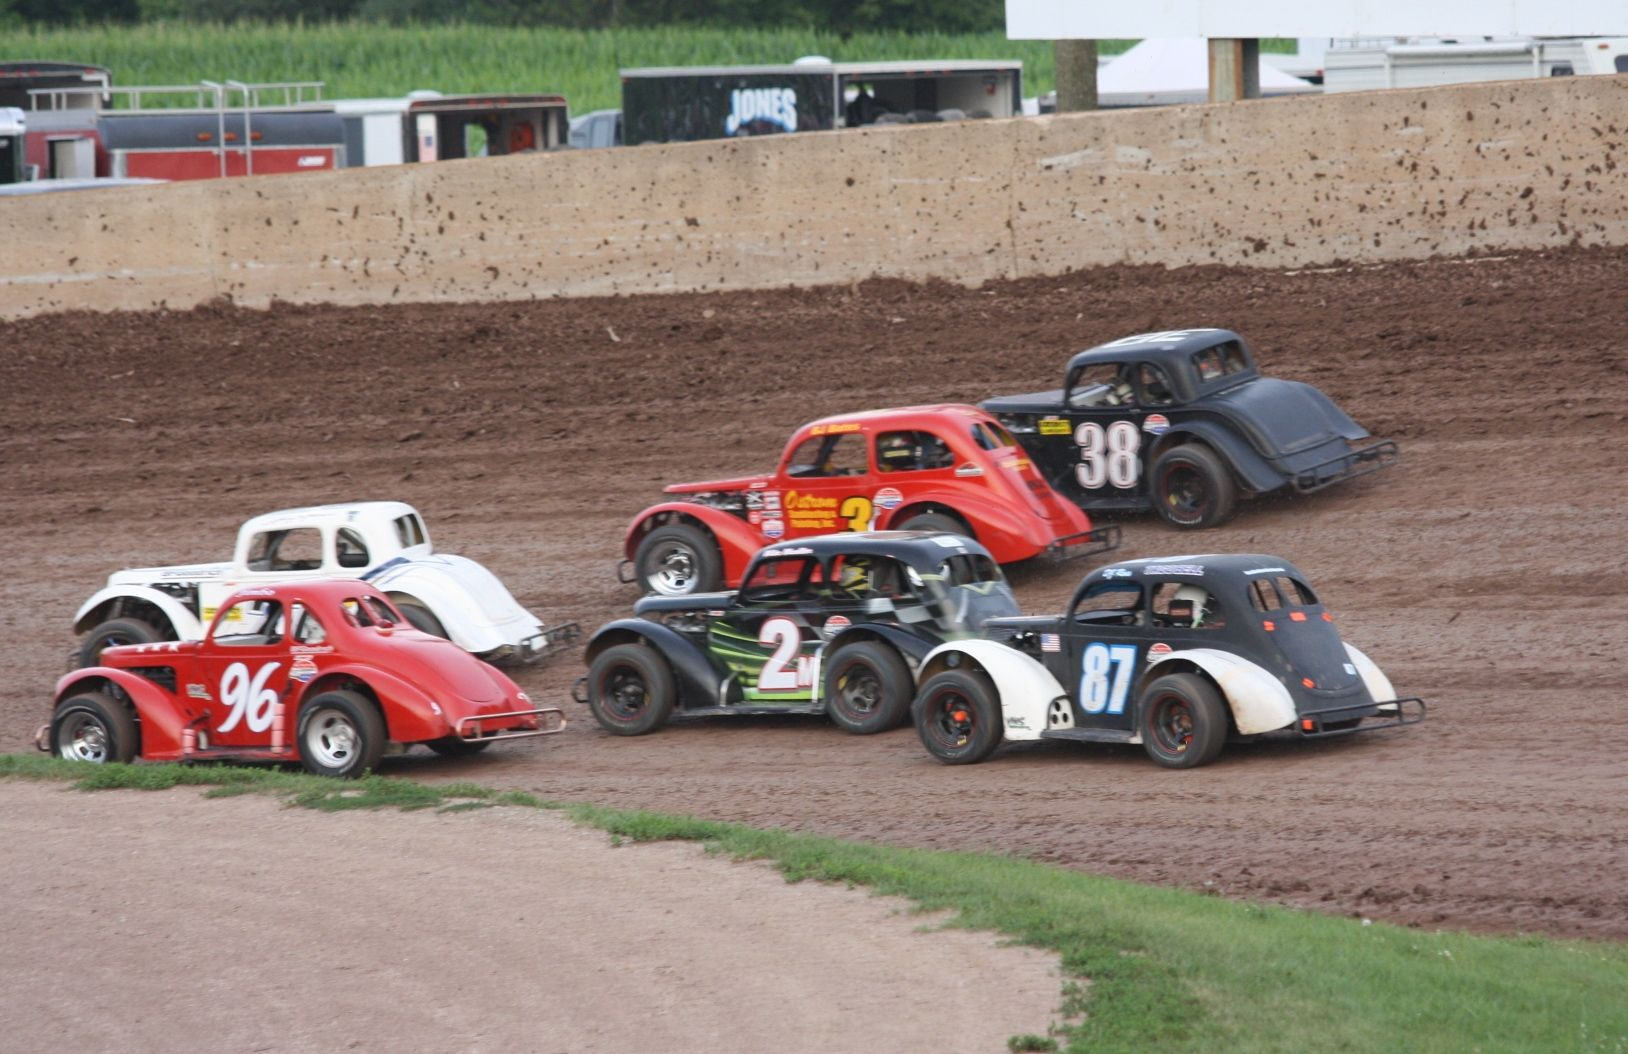 Legends cars racing on dirt | Racing | Pinterest | Dirt track and Cars